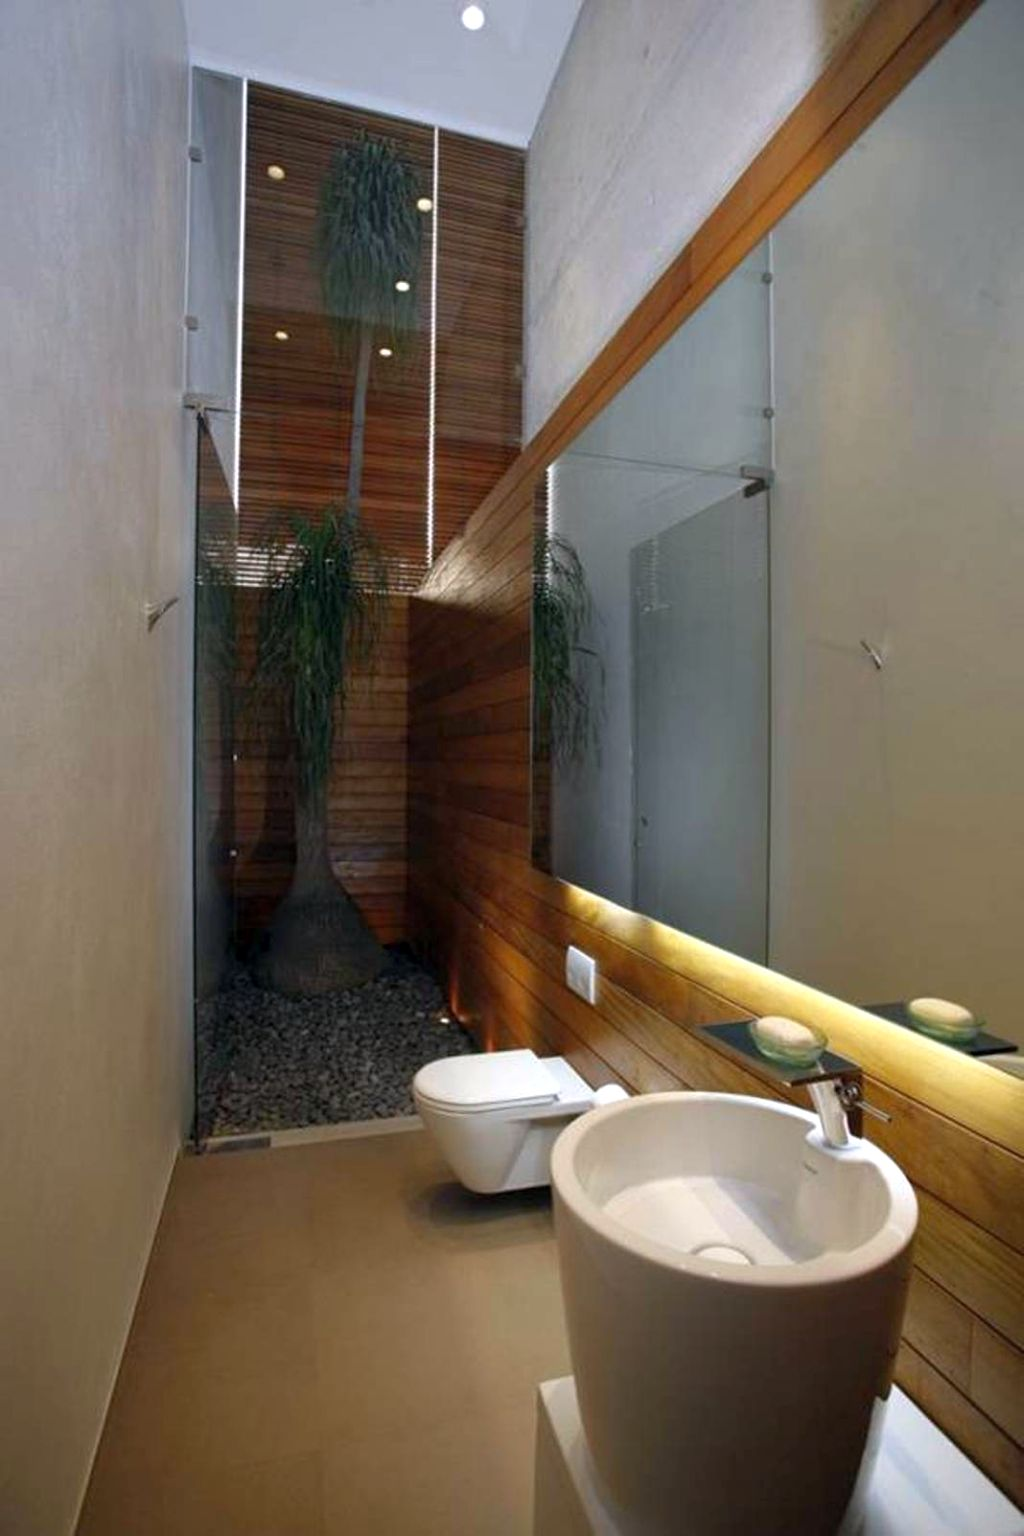 modern bathroom design black bathroom fixtures and decor keeping interesting cool modern bathroom design ideas with modern bathroom design